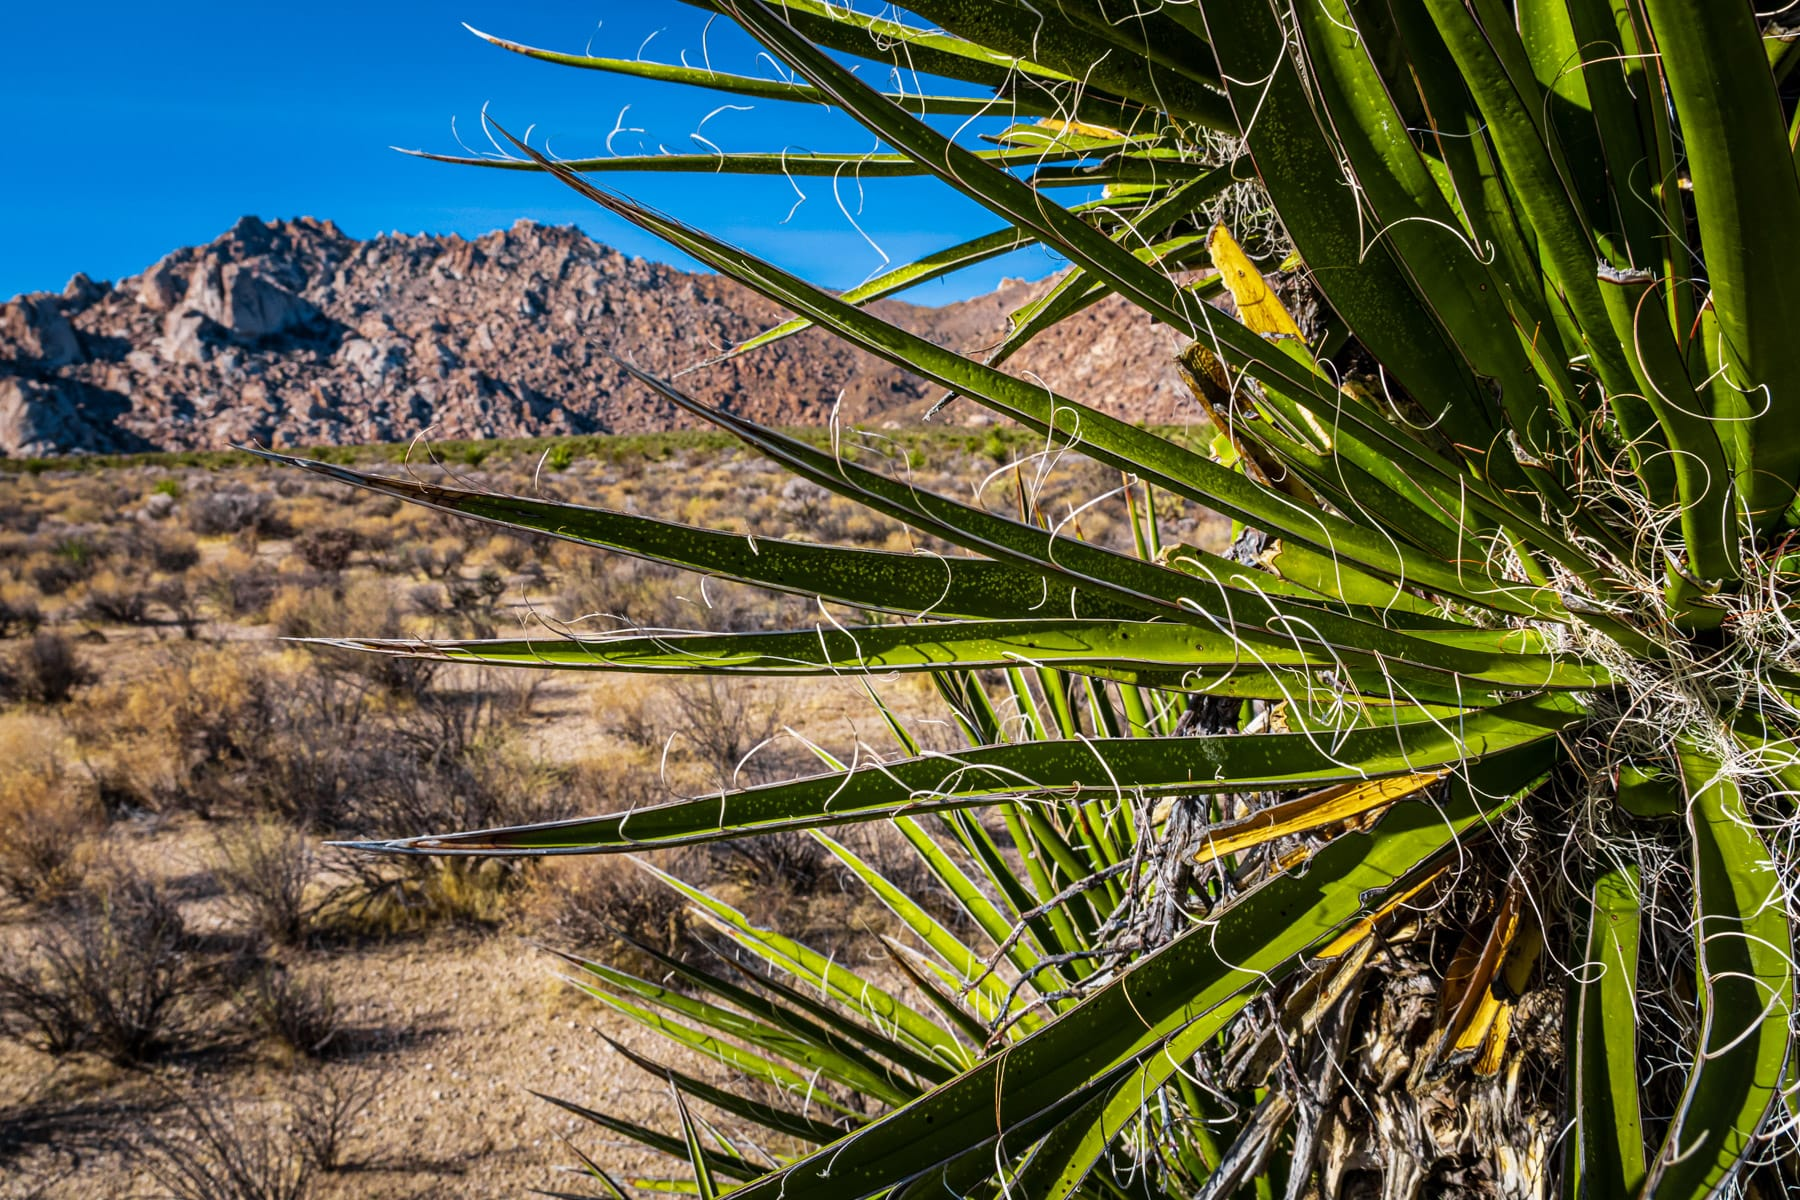 Detail of a yucca growing in California's Mojave National Preserve.